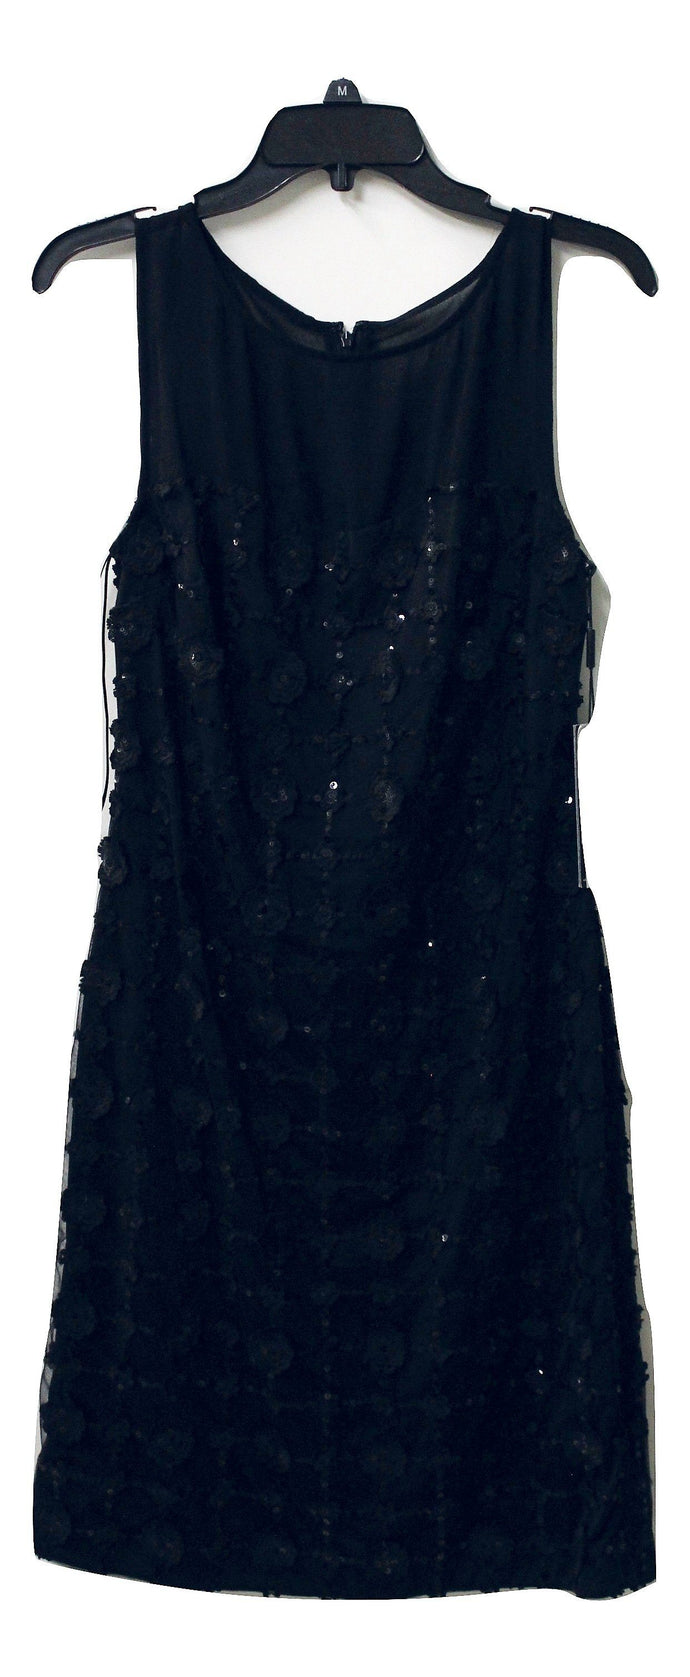 Karl Lagerfeld Women's Black Floral Sequin Dress Size 2